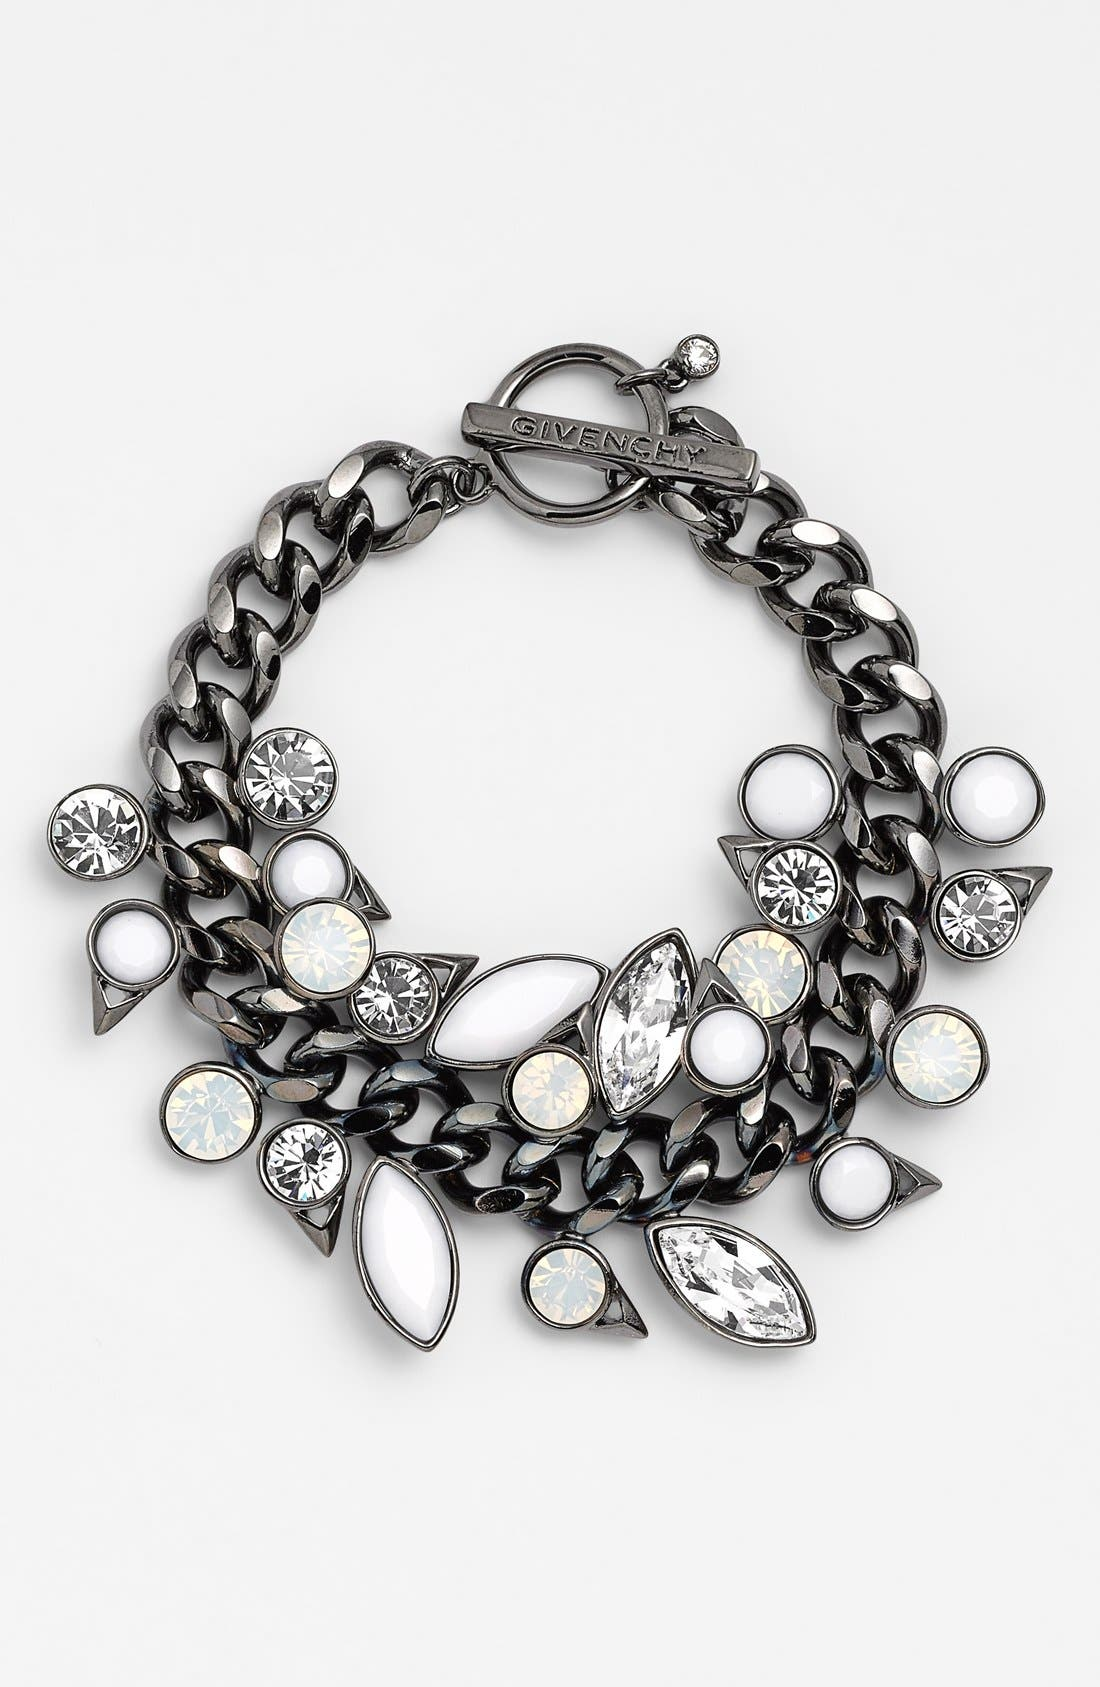 Main Image - Givenchy Toggle Bracelet